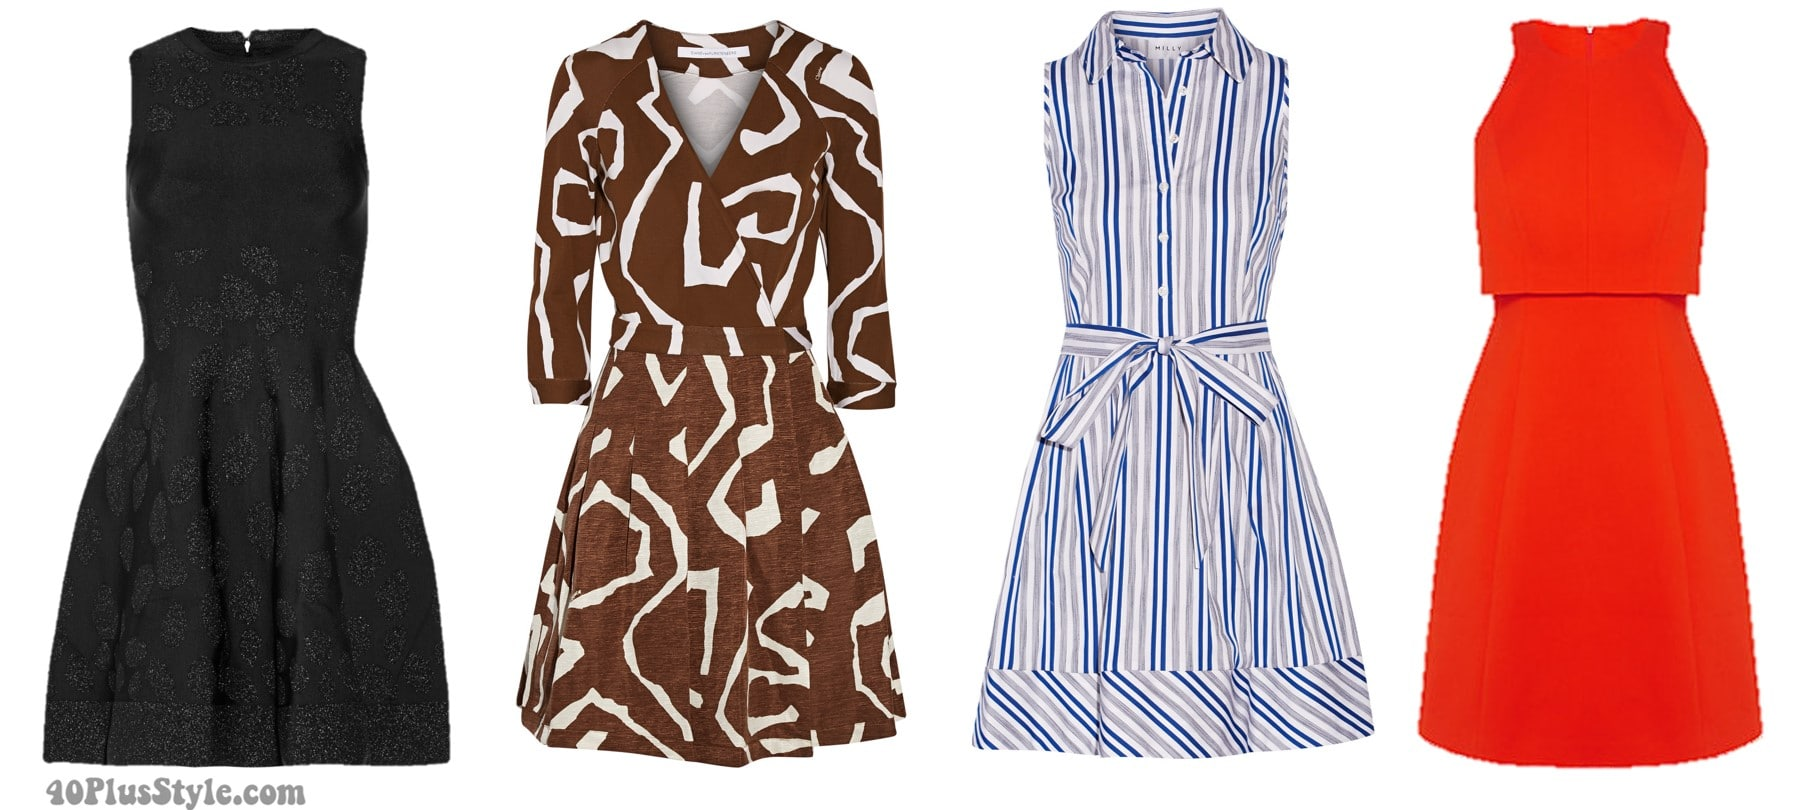 Inverted triangle body shape spring looks dresses a-line   40plusstyle.com